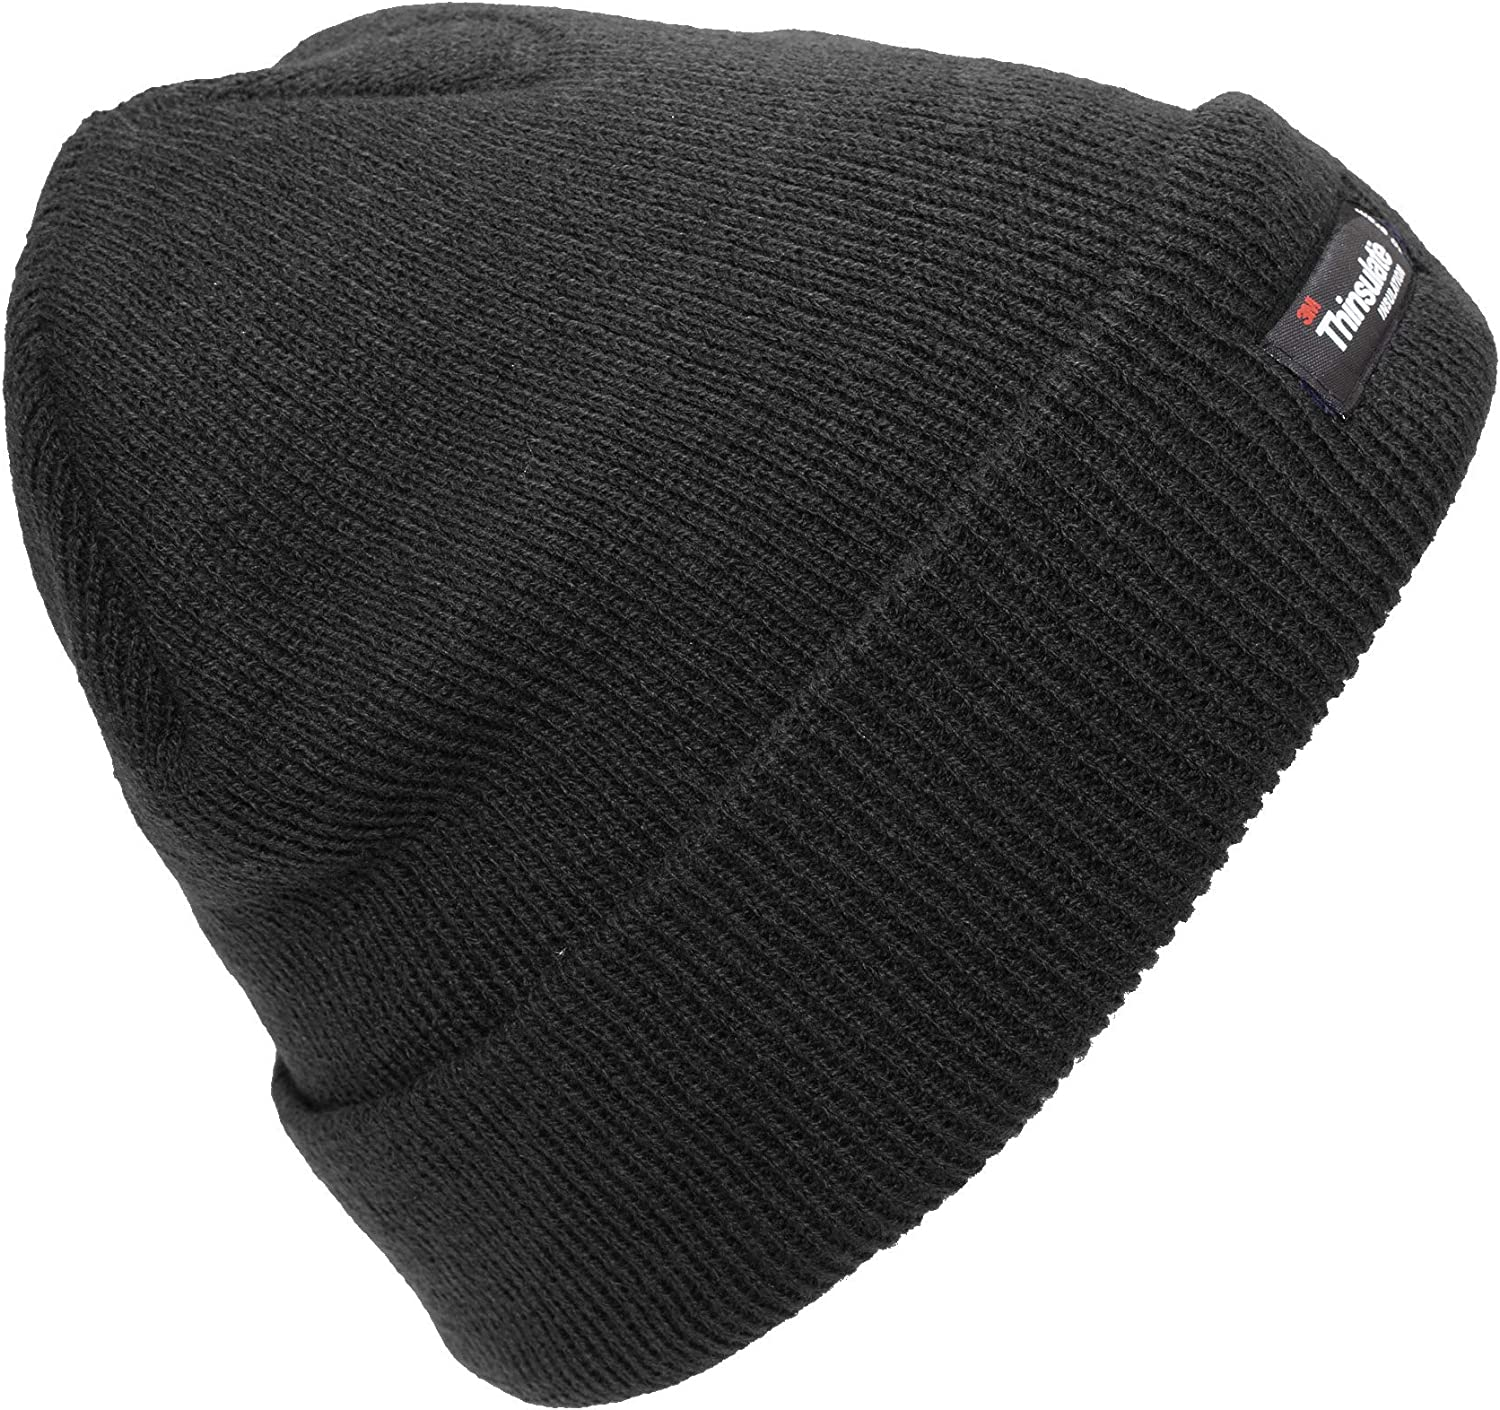 Floso/® Kids//Childrens Knitted Winter//Ski Hat with Thinsulate Lining 3M 40g